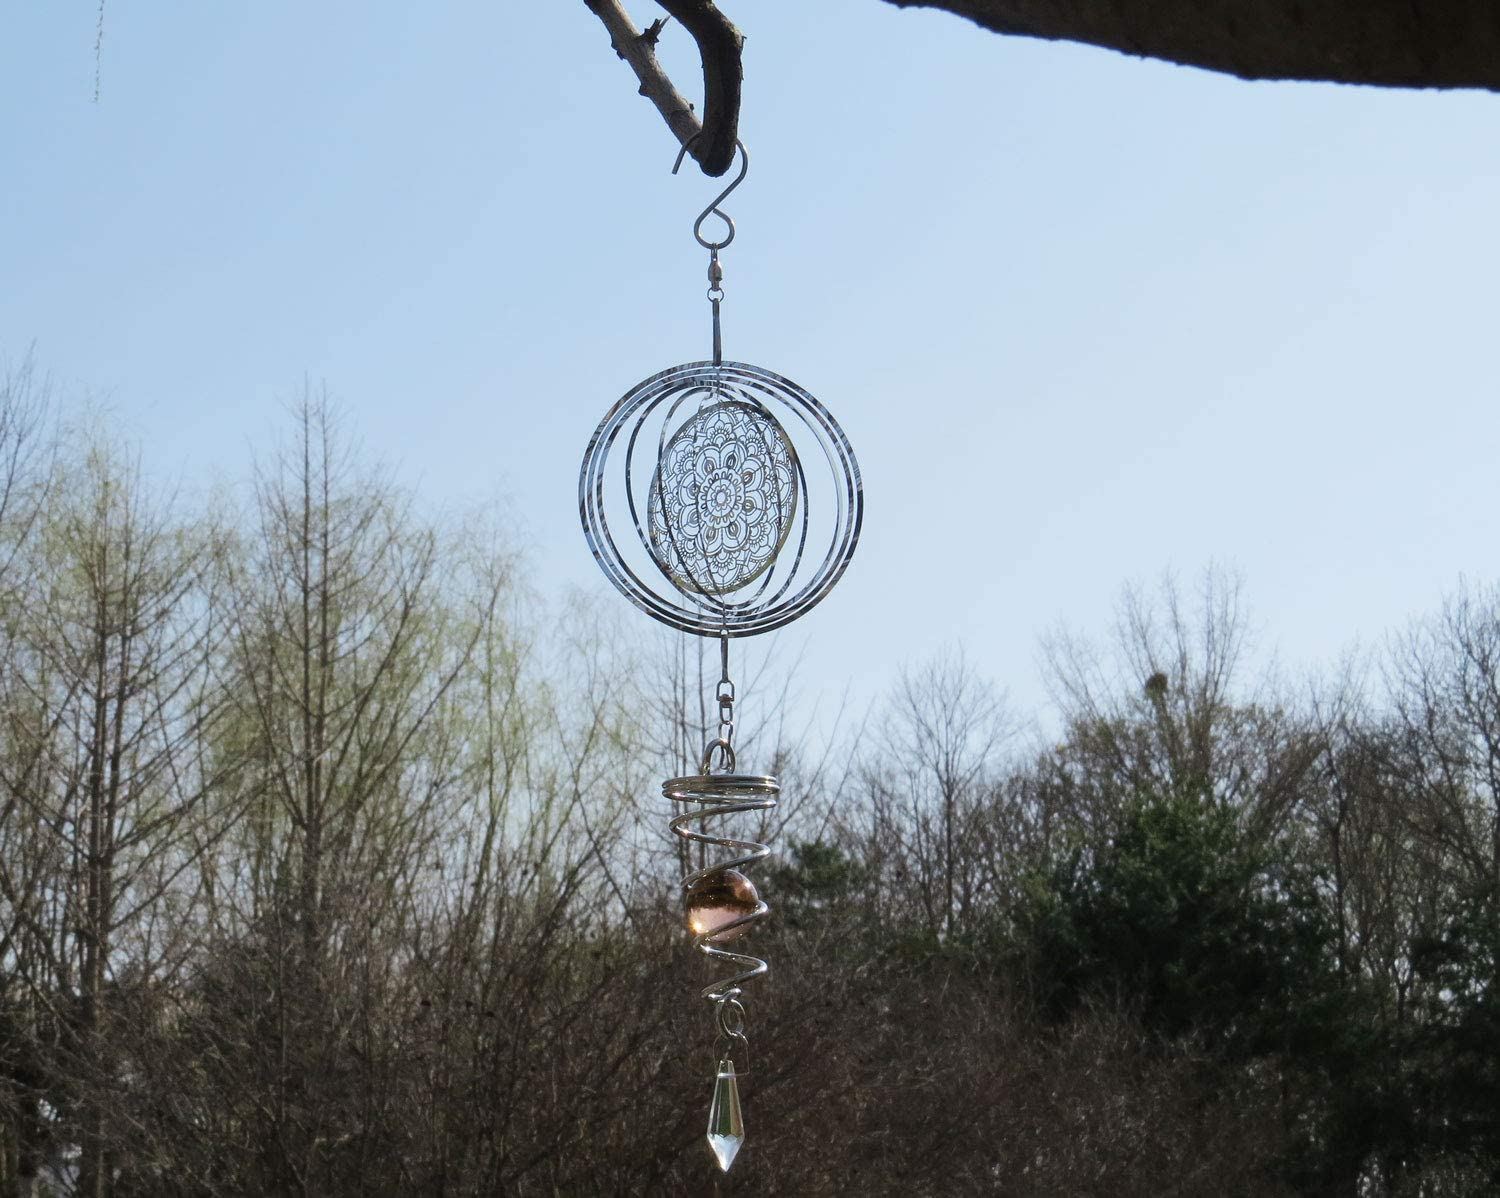 3D Mandala Wind Spinner Hanging with Gazing Ball Spiral Tail, 360 Degrees Spin Metal Wind Sculptures, Stainless Steel Chimes for Outdoor Garden Room Crafts (14 Inches, Mandala)